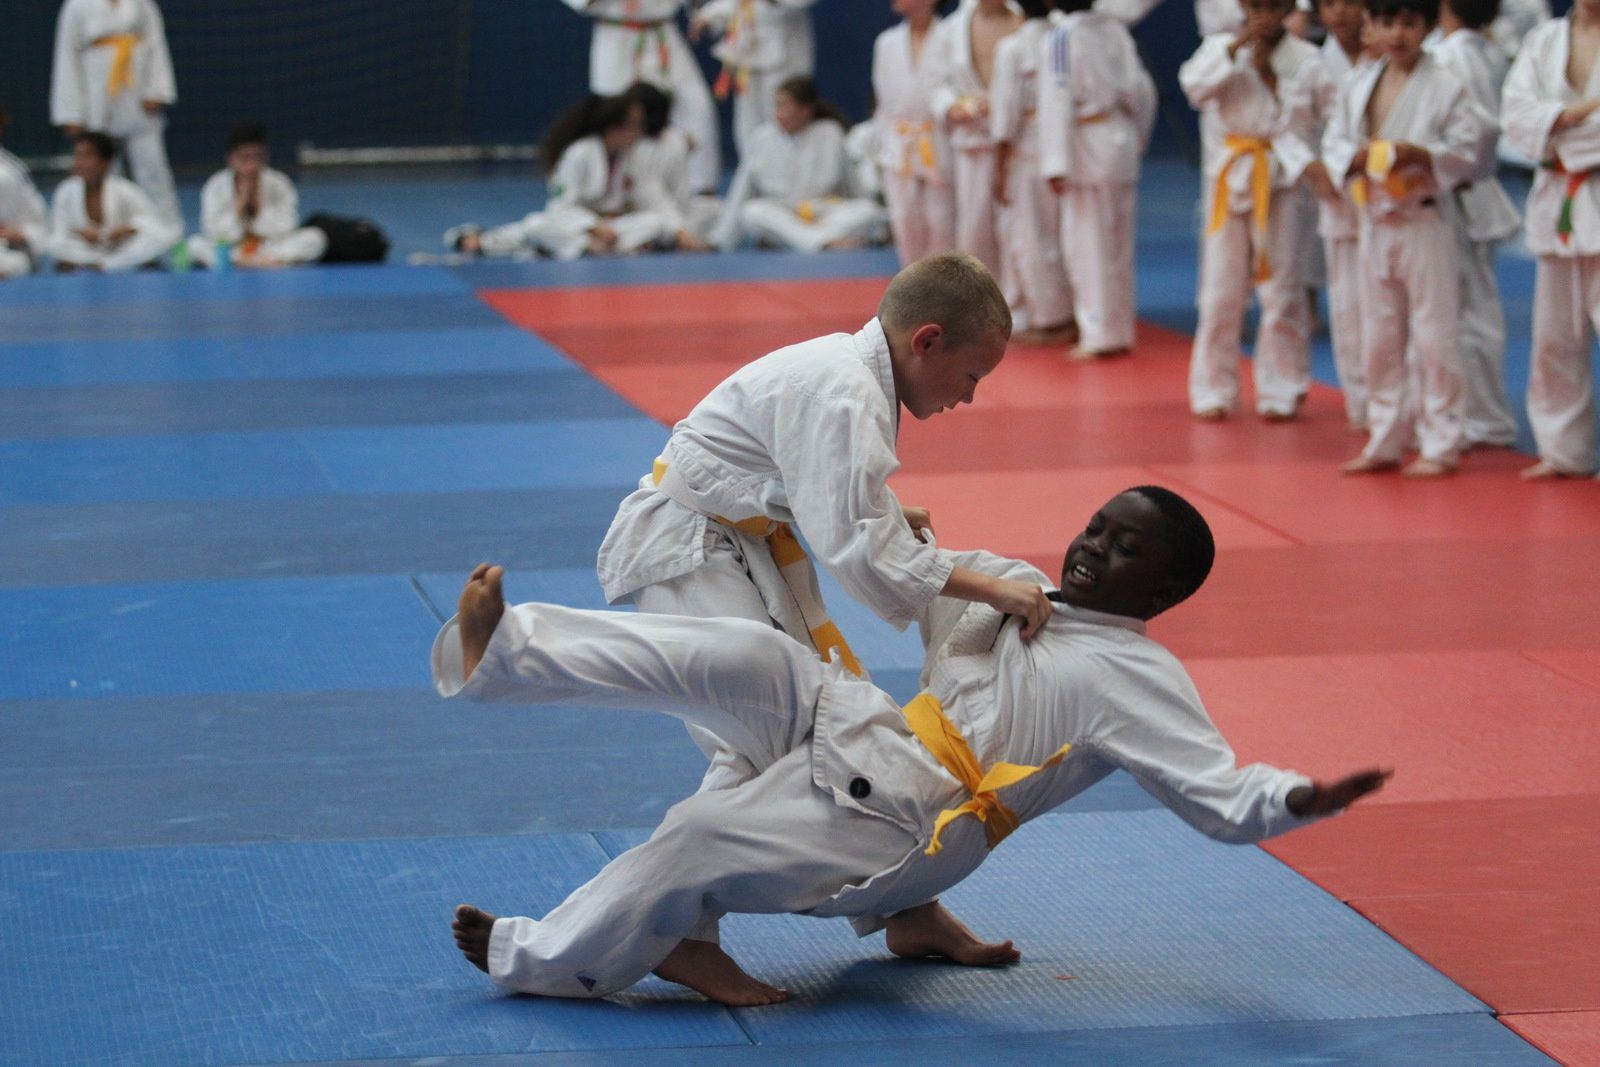 Le judo version Parilly a fini la saison en beauté